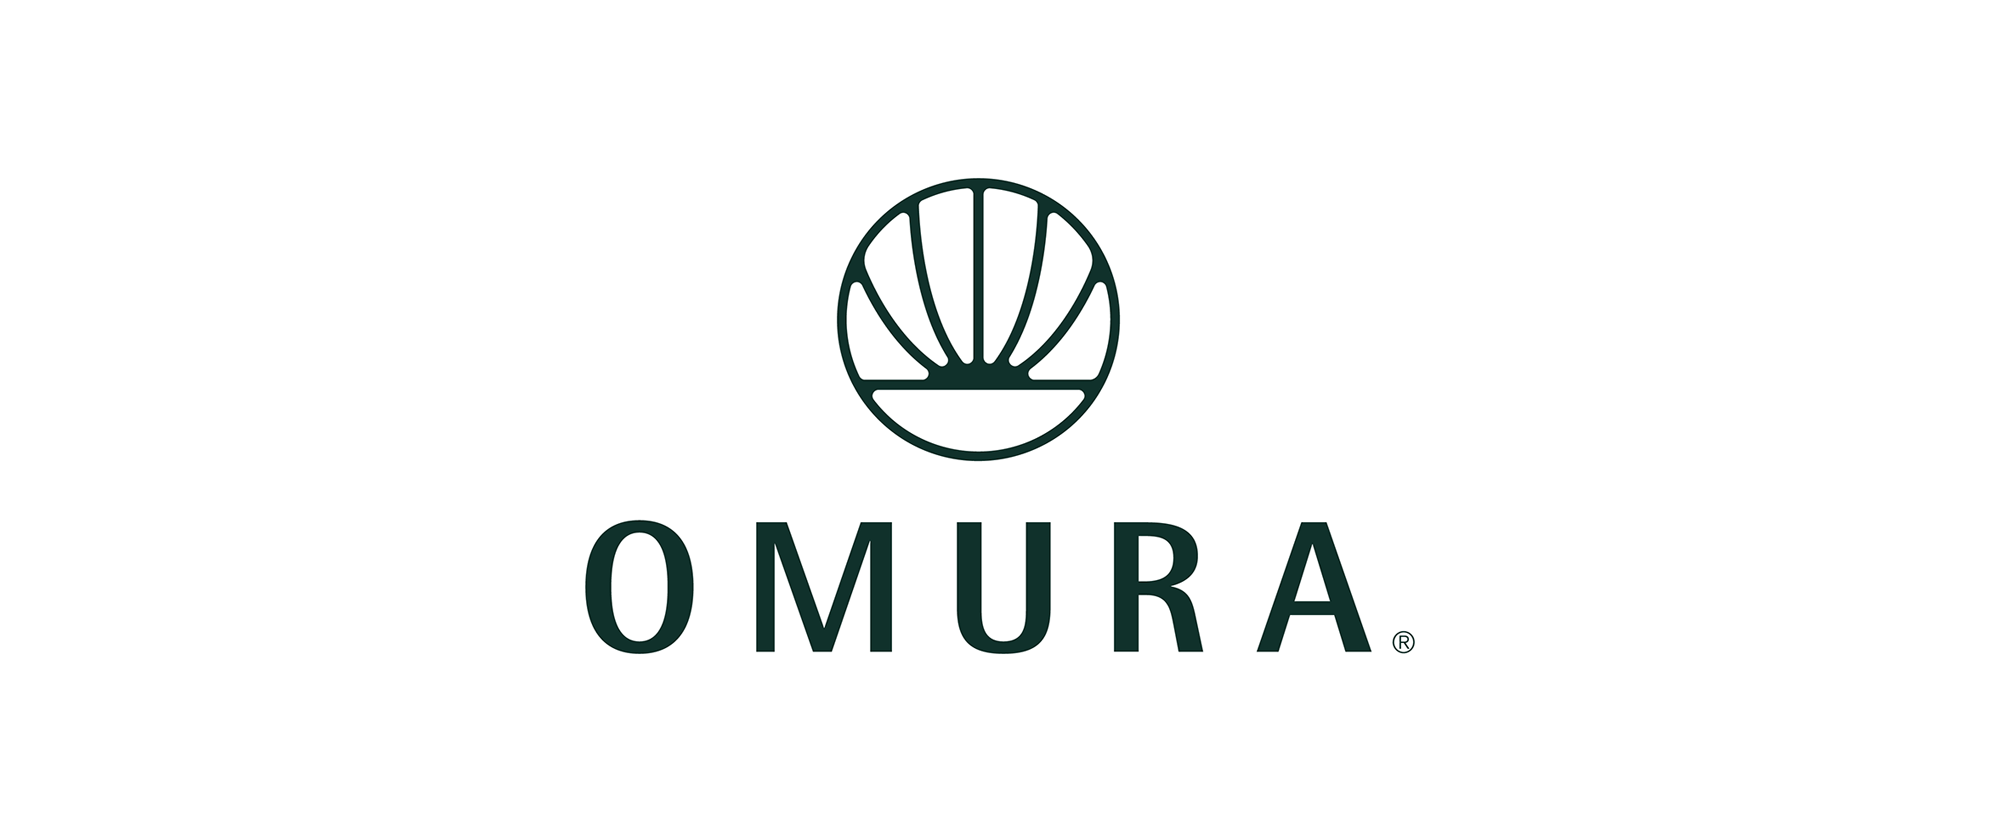 Brand New New Logo And Packaging For Omura By Safari Sundays